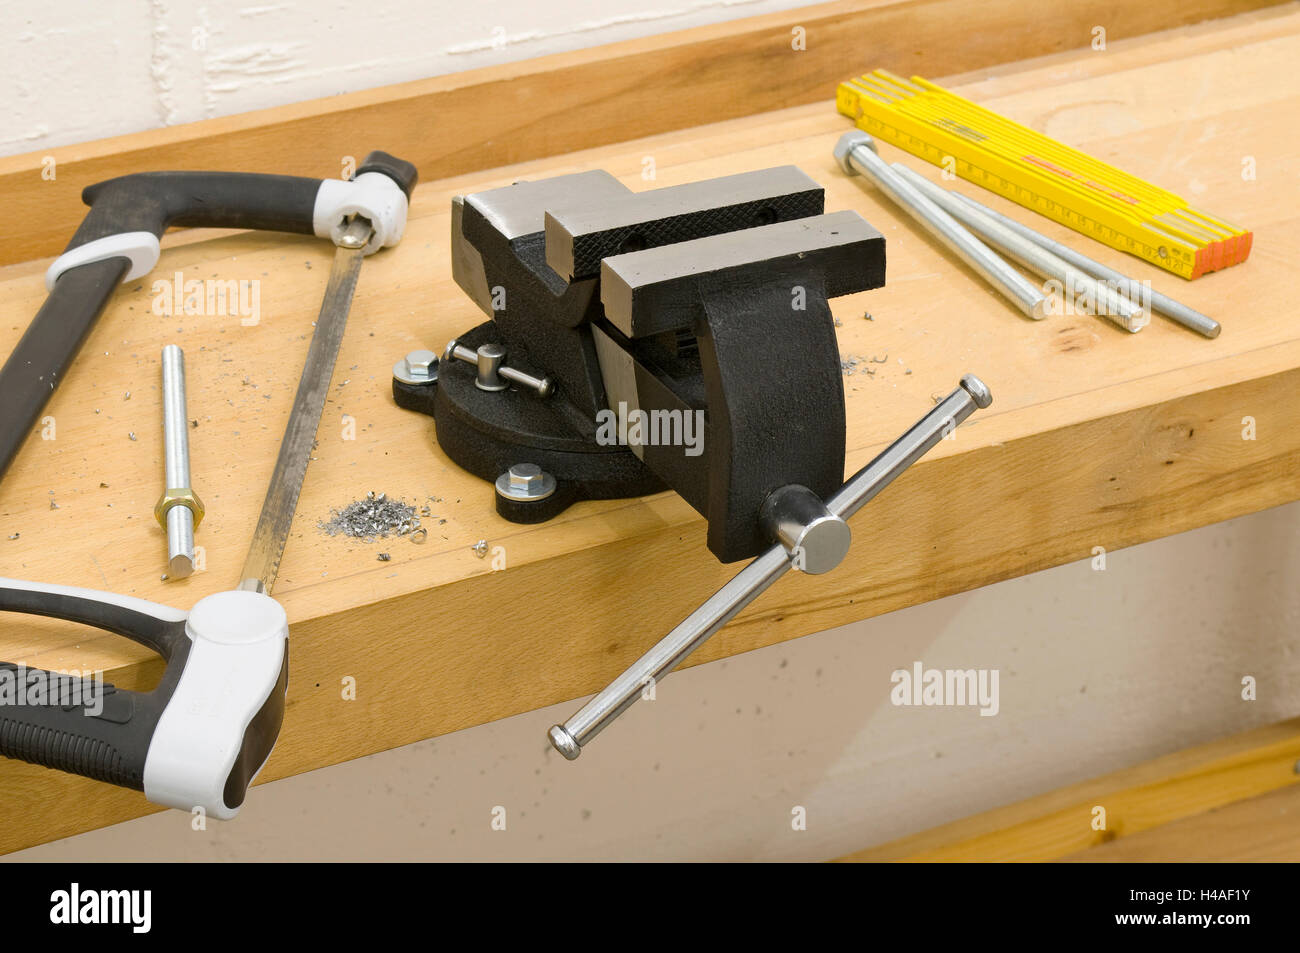 Anvil, workbench, saw, steel vice - Stock Image